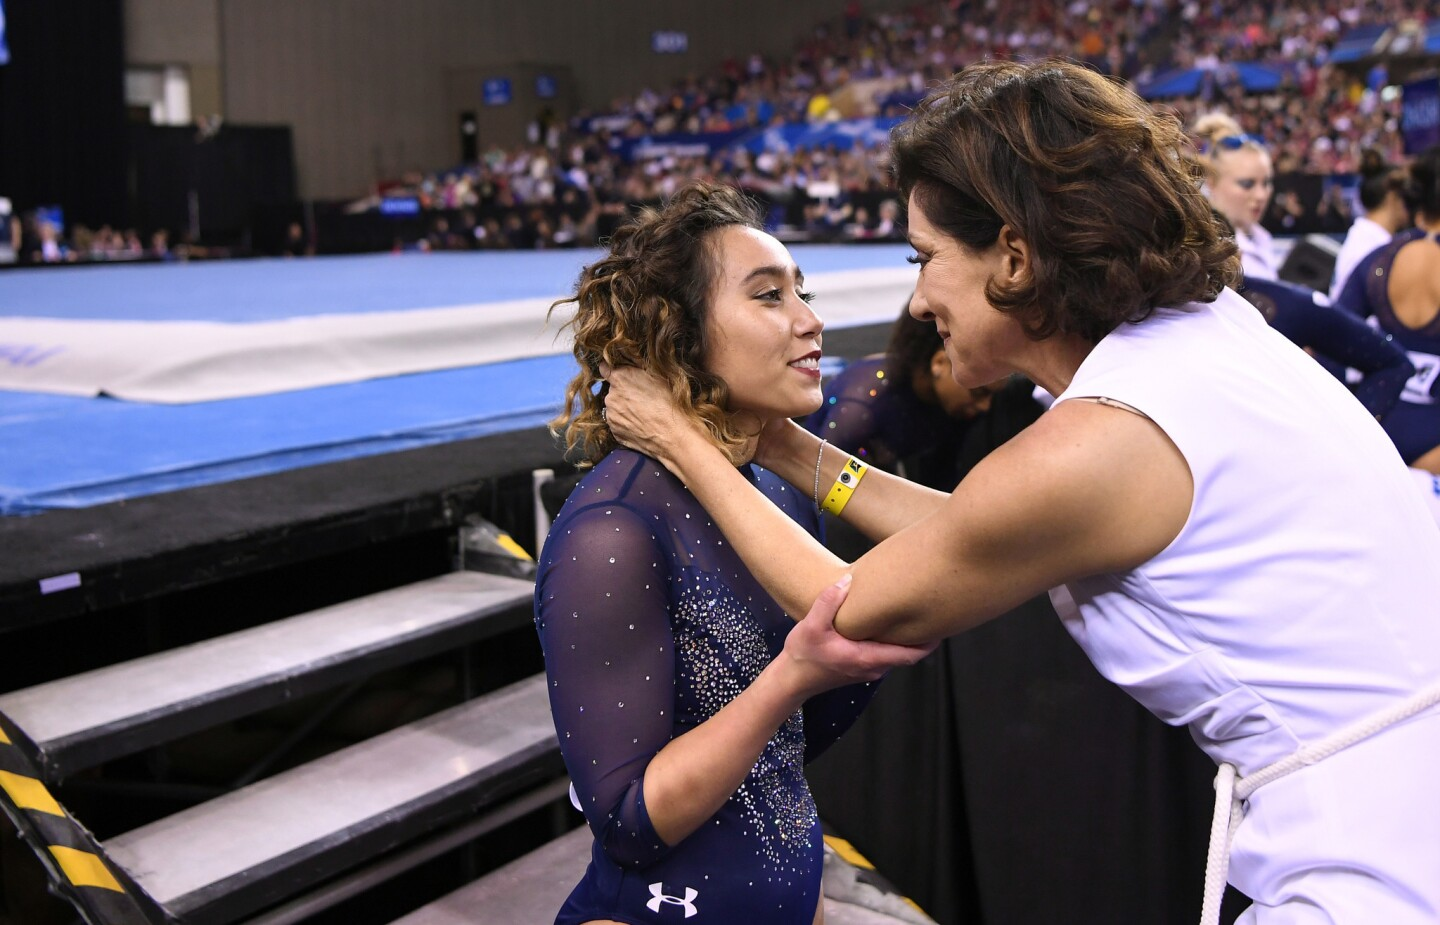 UCLA gymnasts finish third